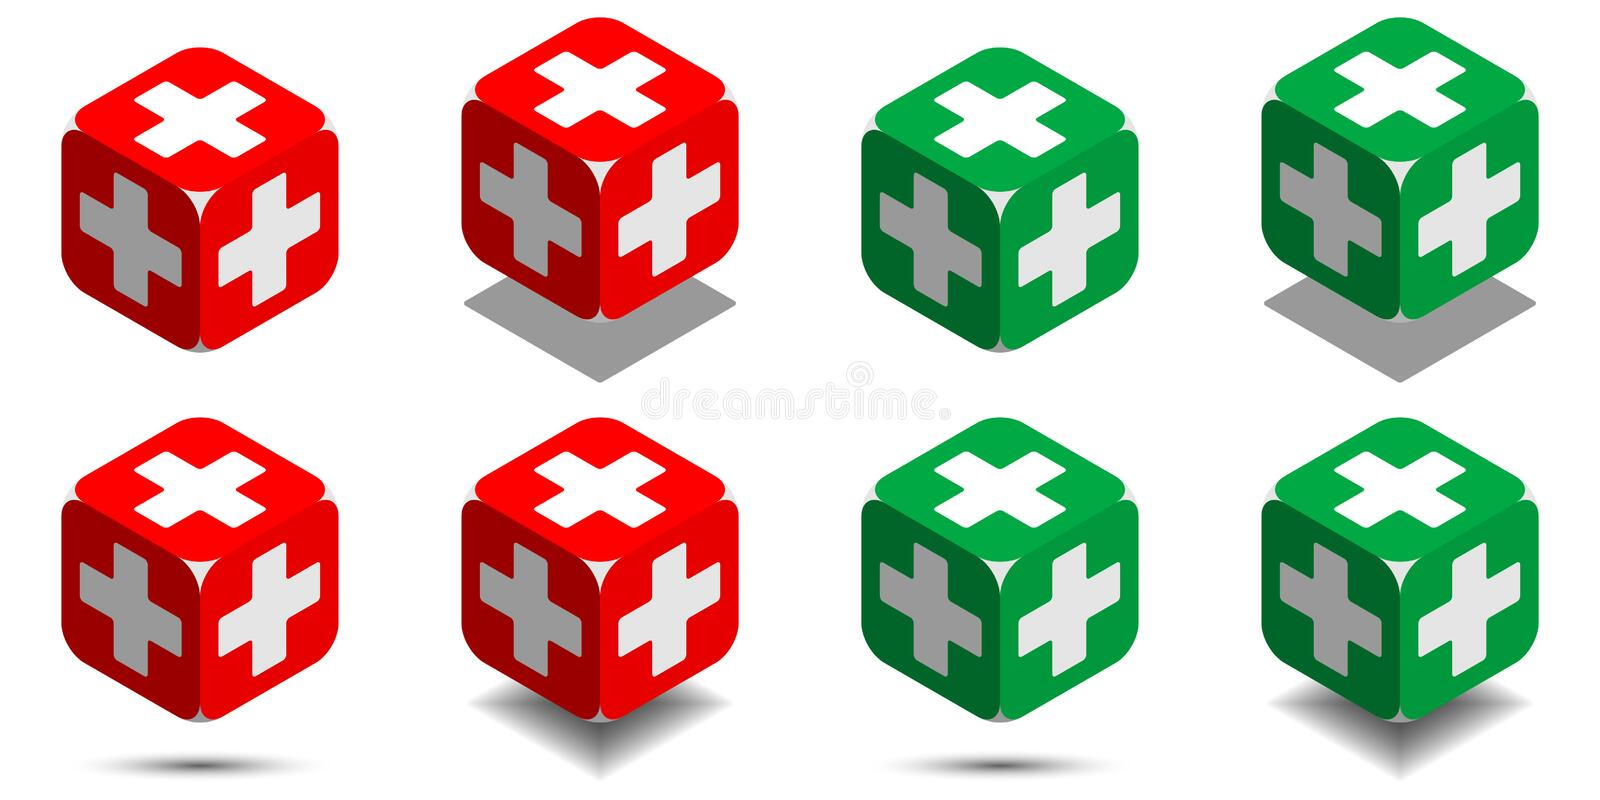 Cube with medical cross in red and green colors, isometric cube of health vector illustration